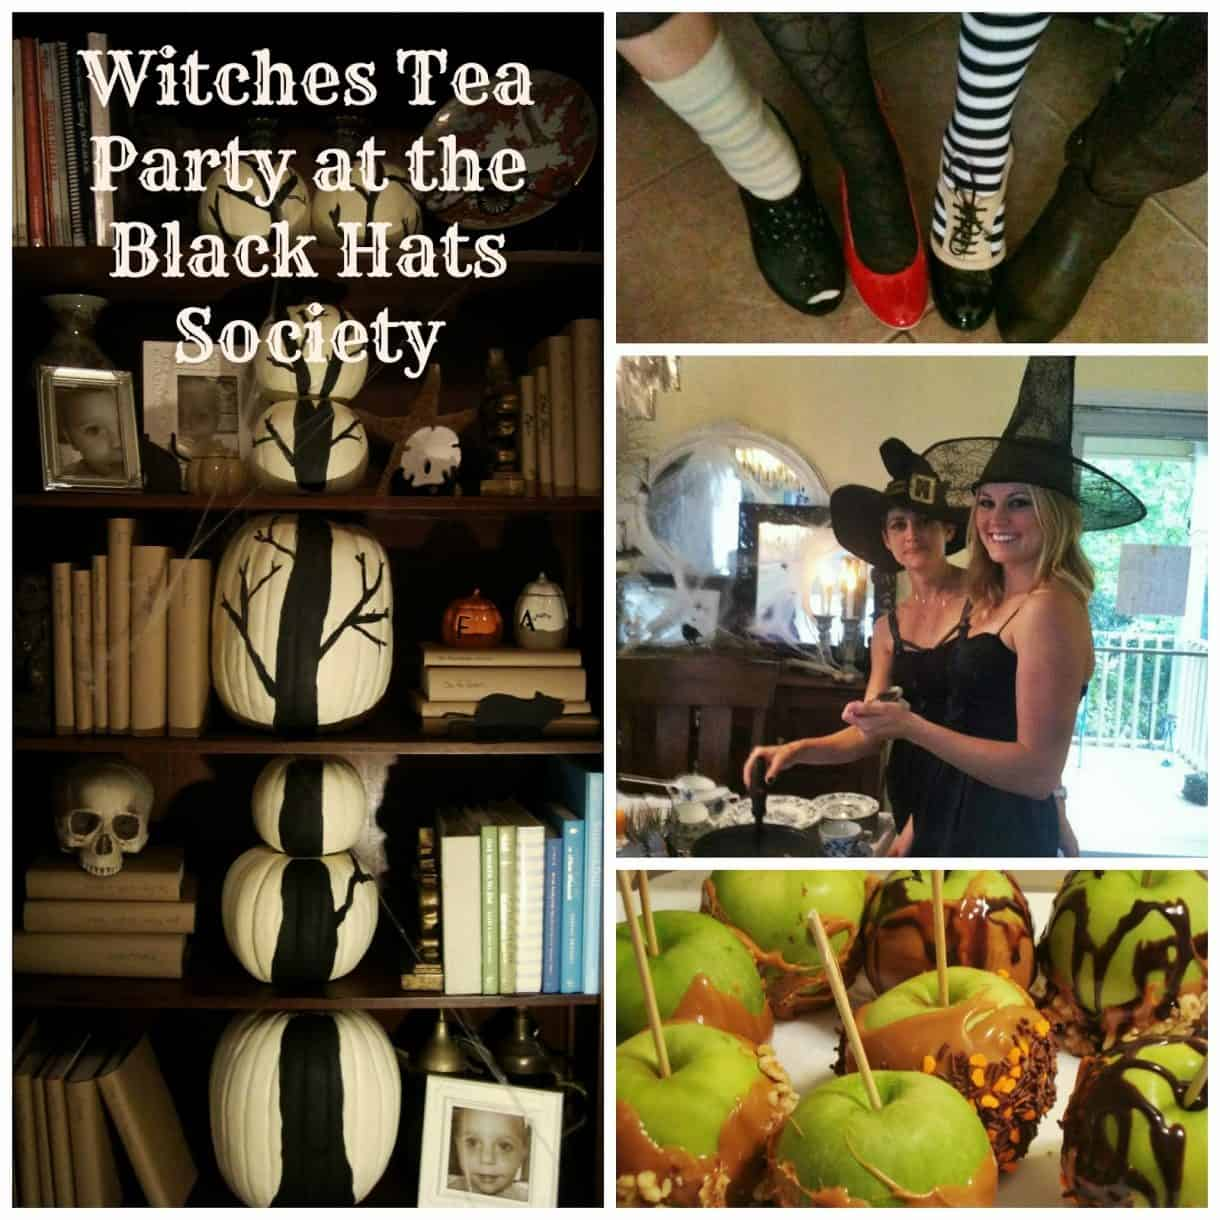 The Witch Themed Party: Witches Tea Party Decor And Invitation Inspiration